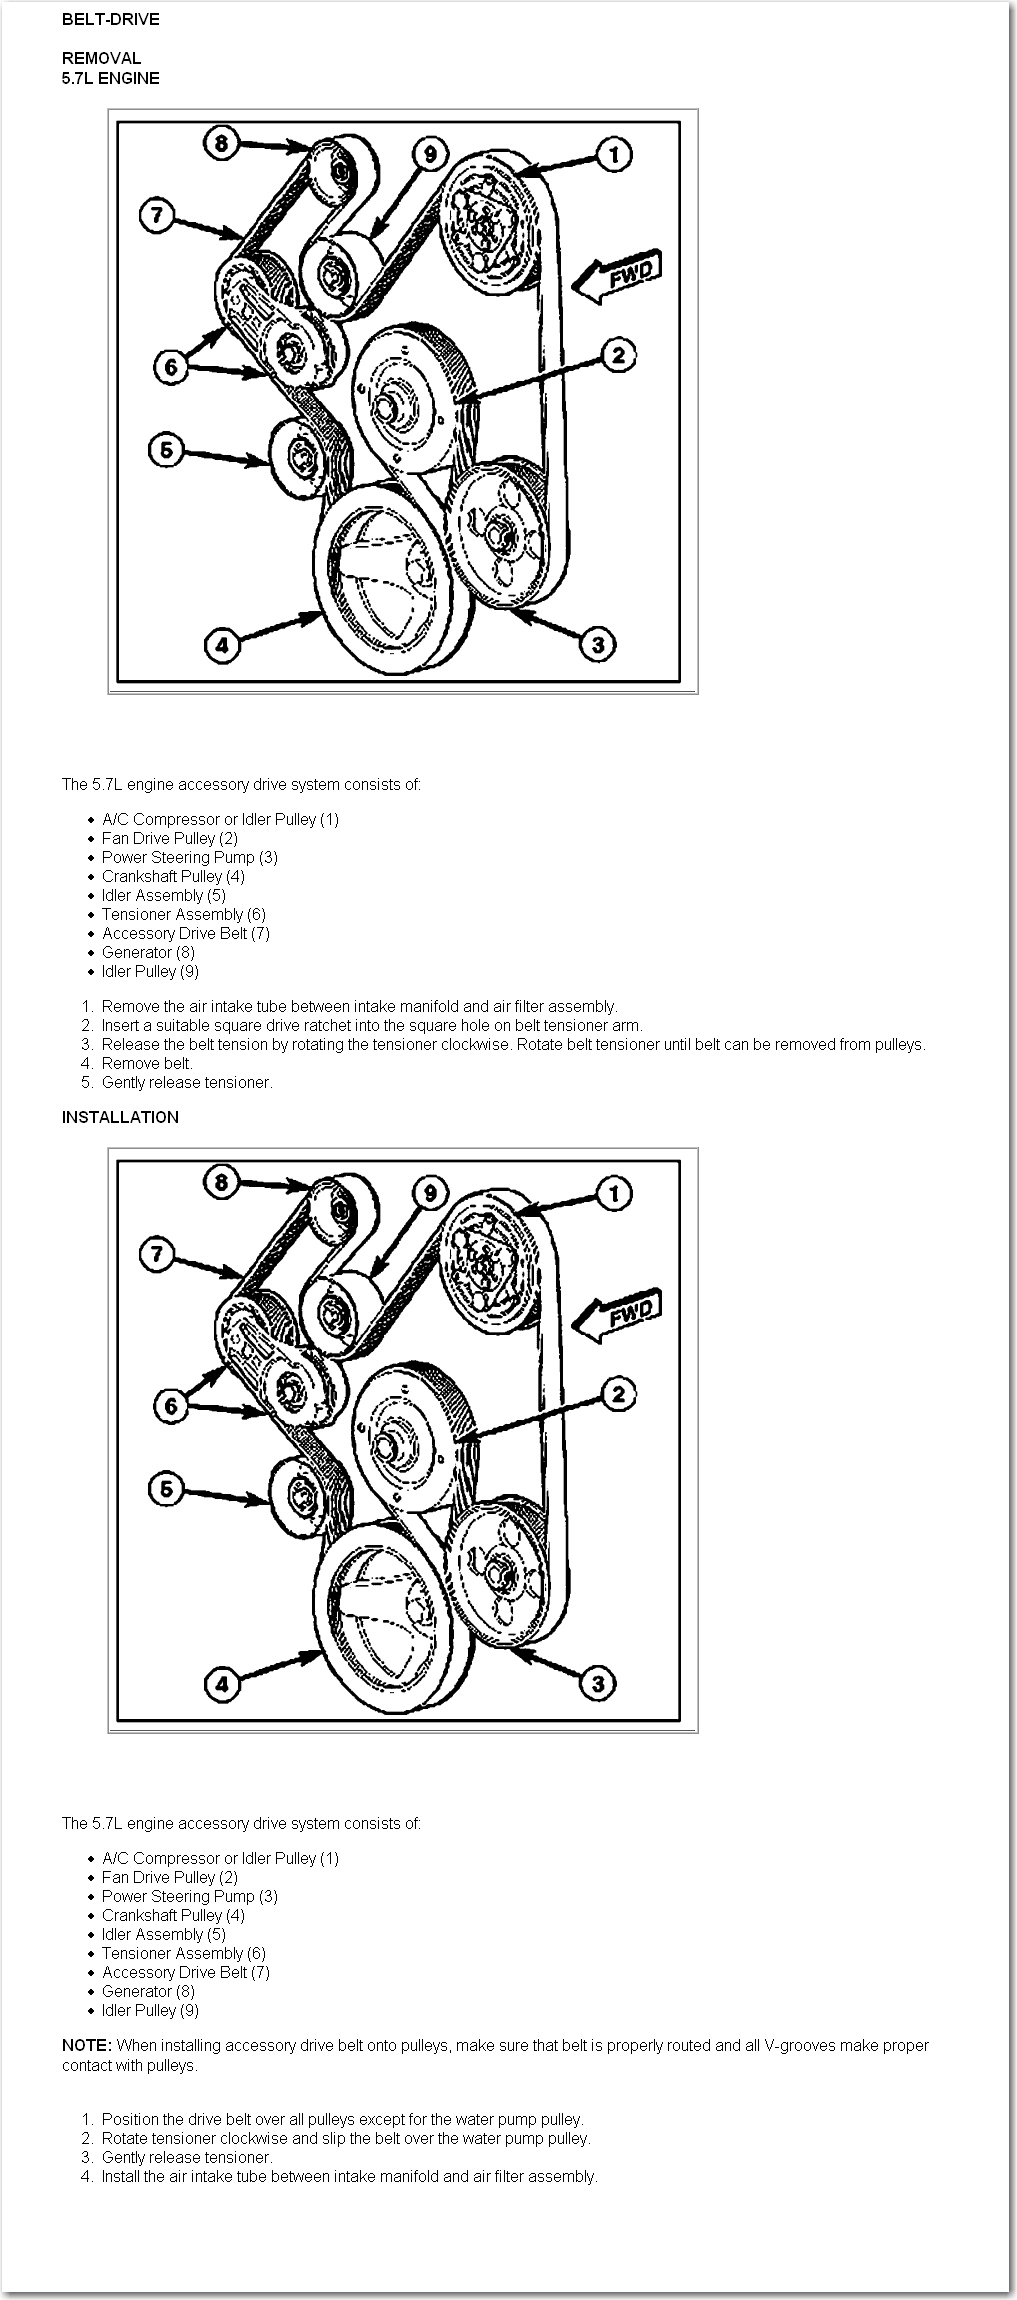 where can i find the routing diagram for the serpentine ... 2010 dodge ram 5.7 hemi serpentine belt diagram dodge 2500 57 hemi serpentine belt diagram #14